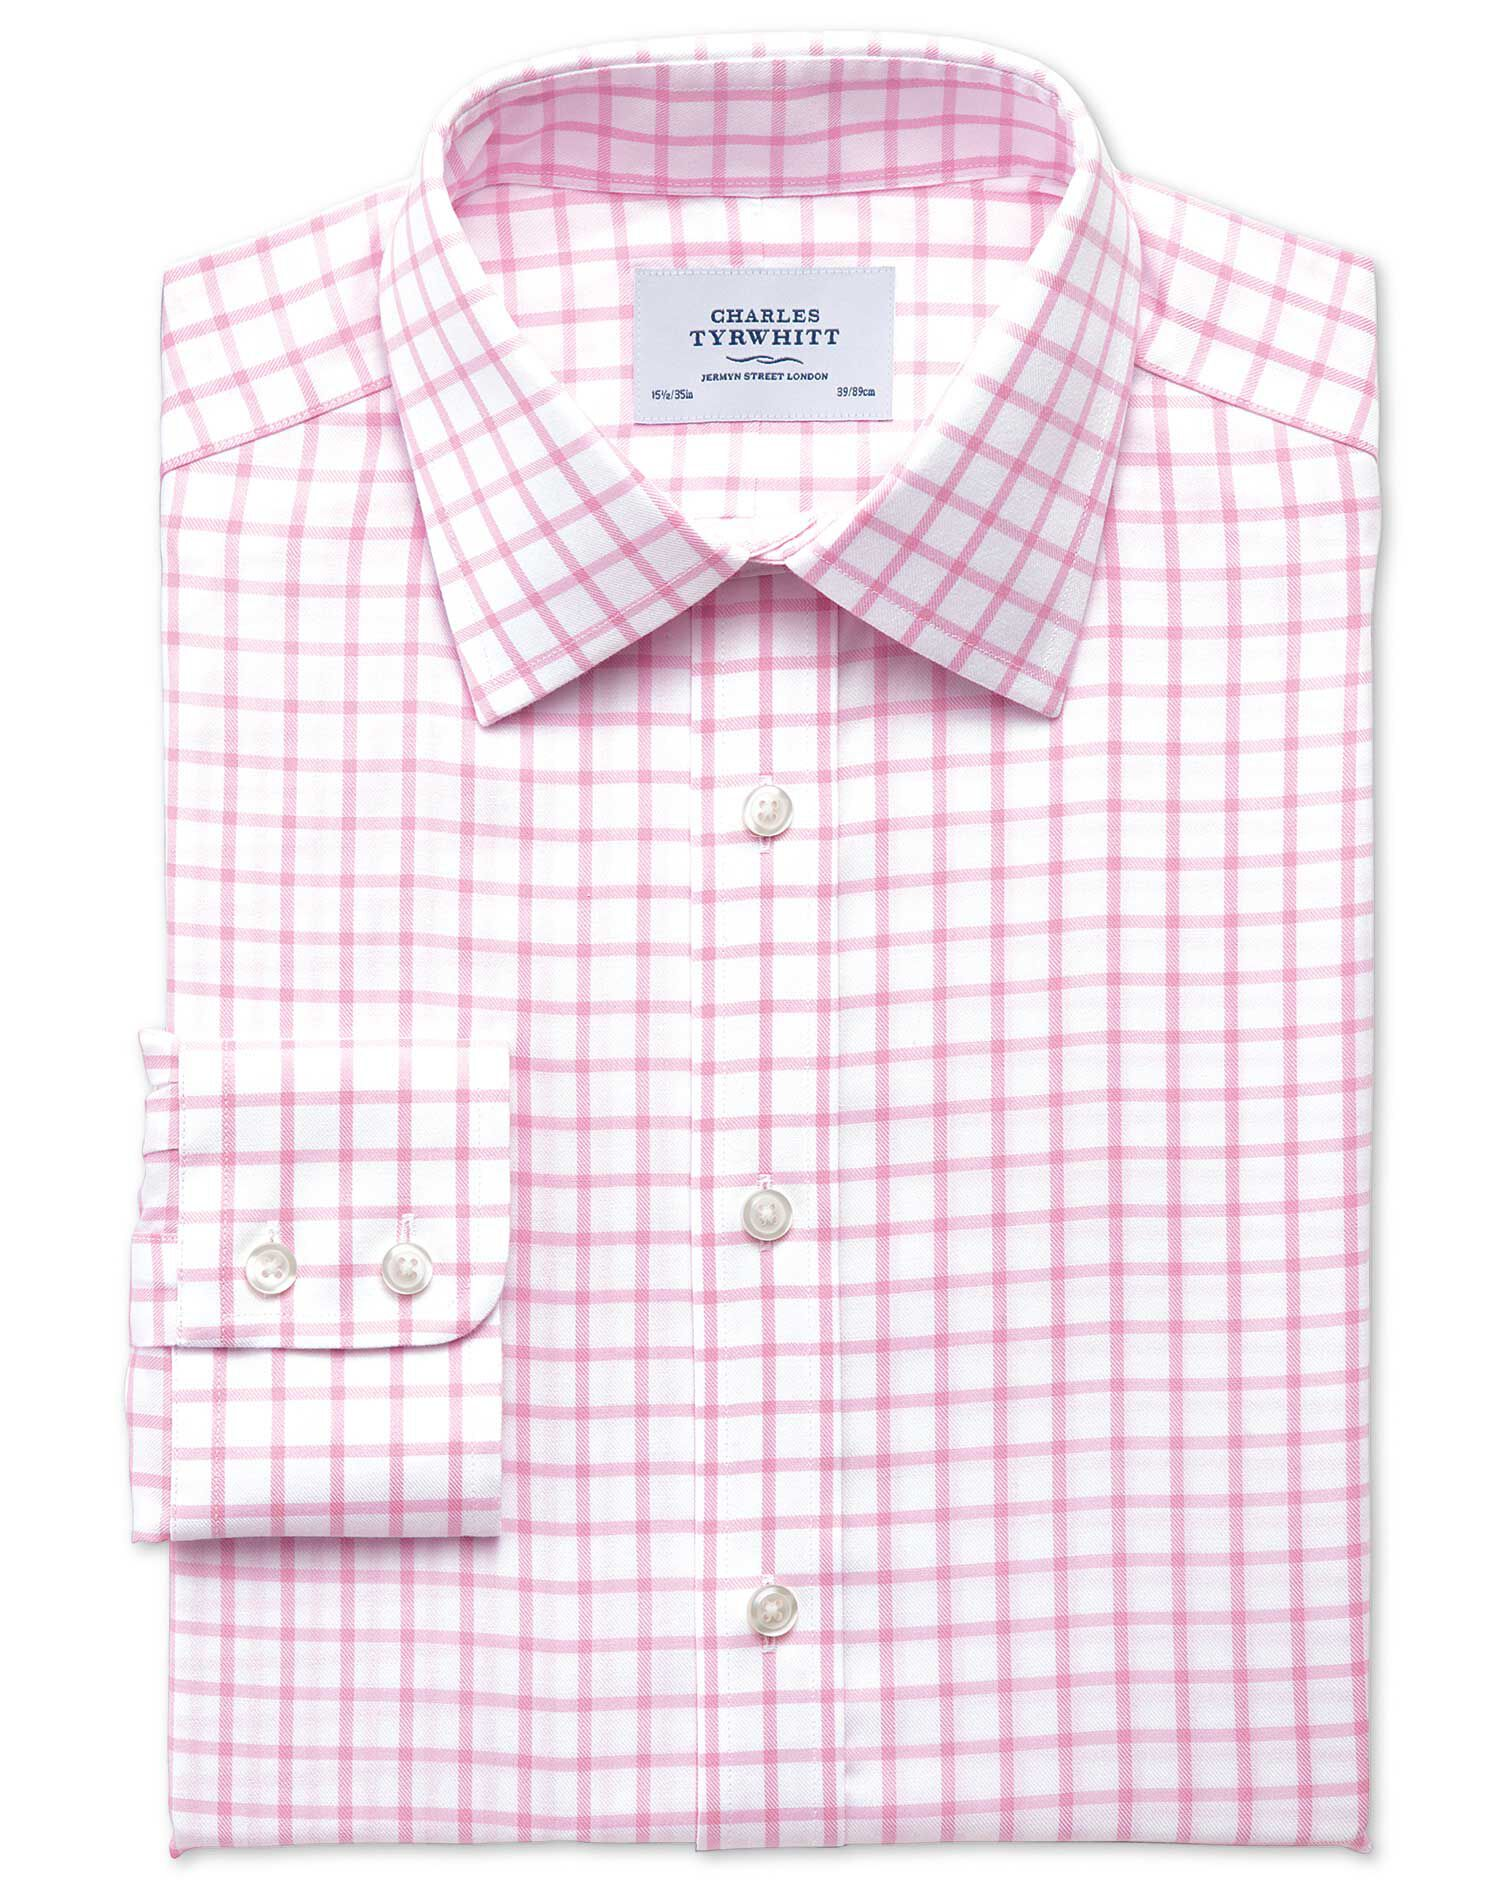 Slim Fit Non-Iron Twill Grid Check Light Pink Cotton Formal Shirt Single Cuff Size 16/36 by Charles